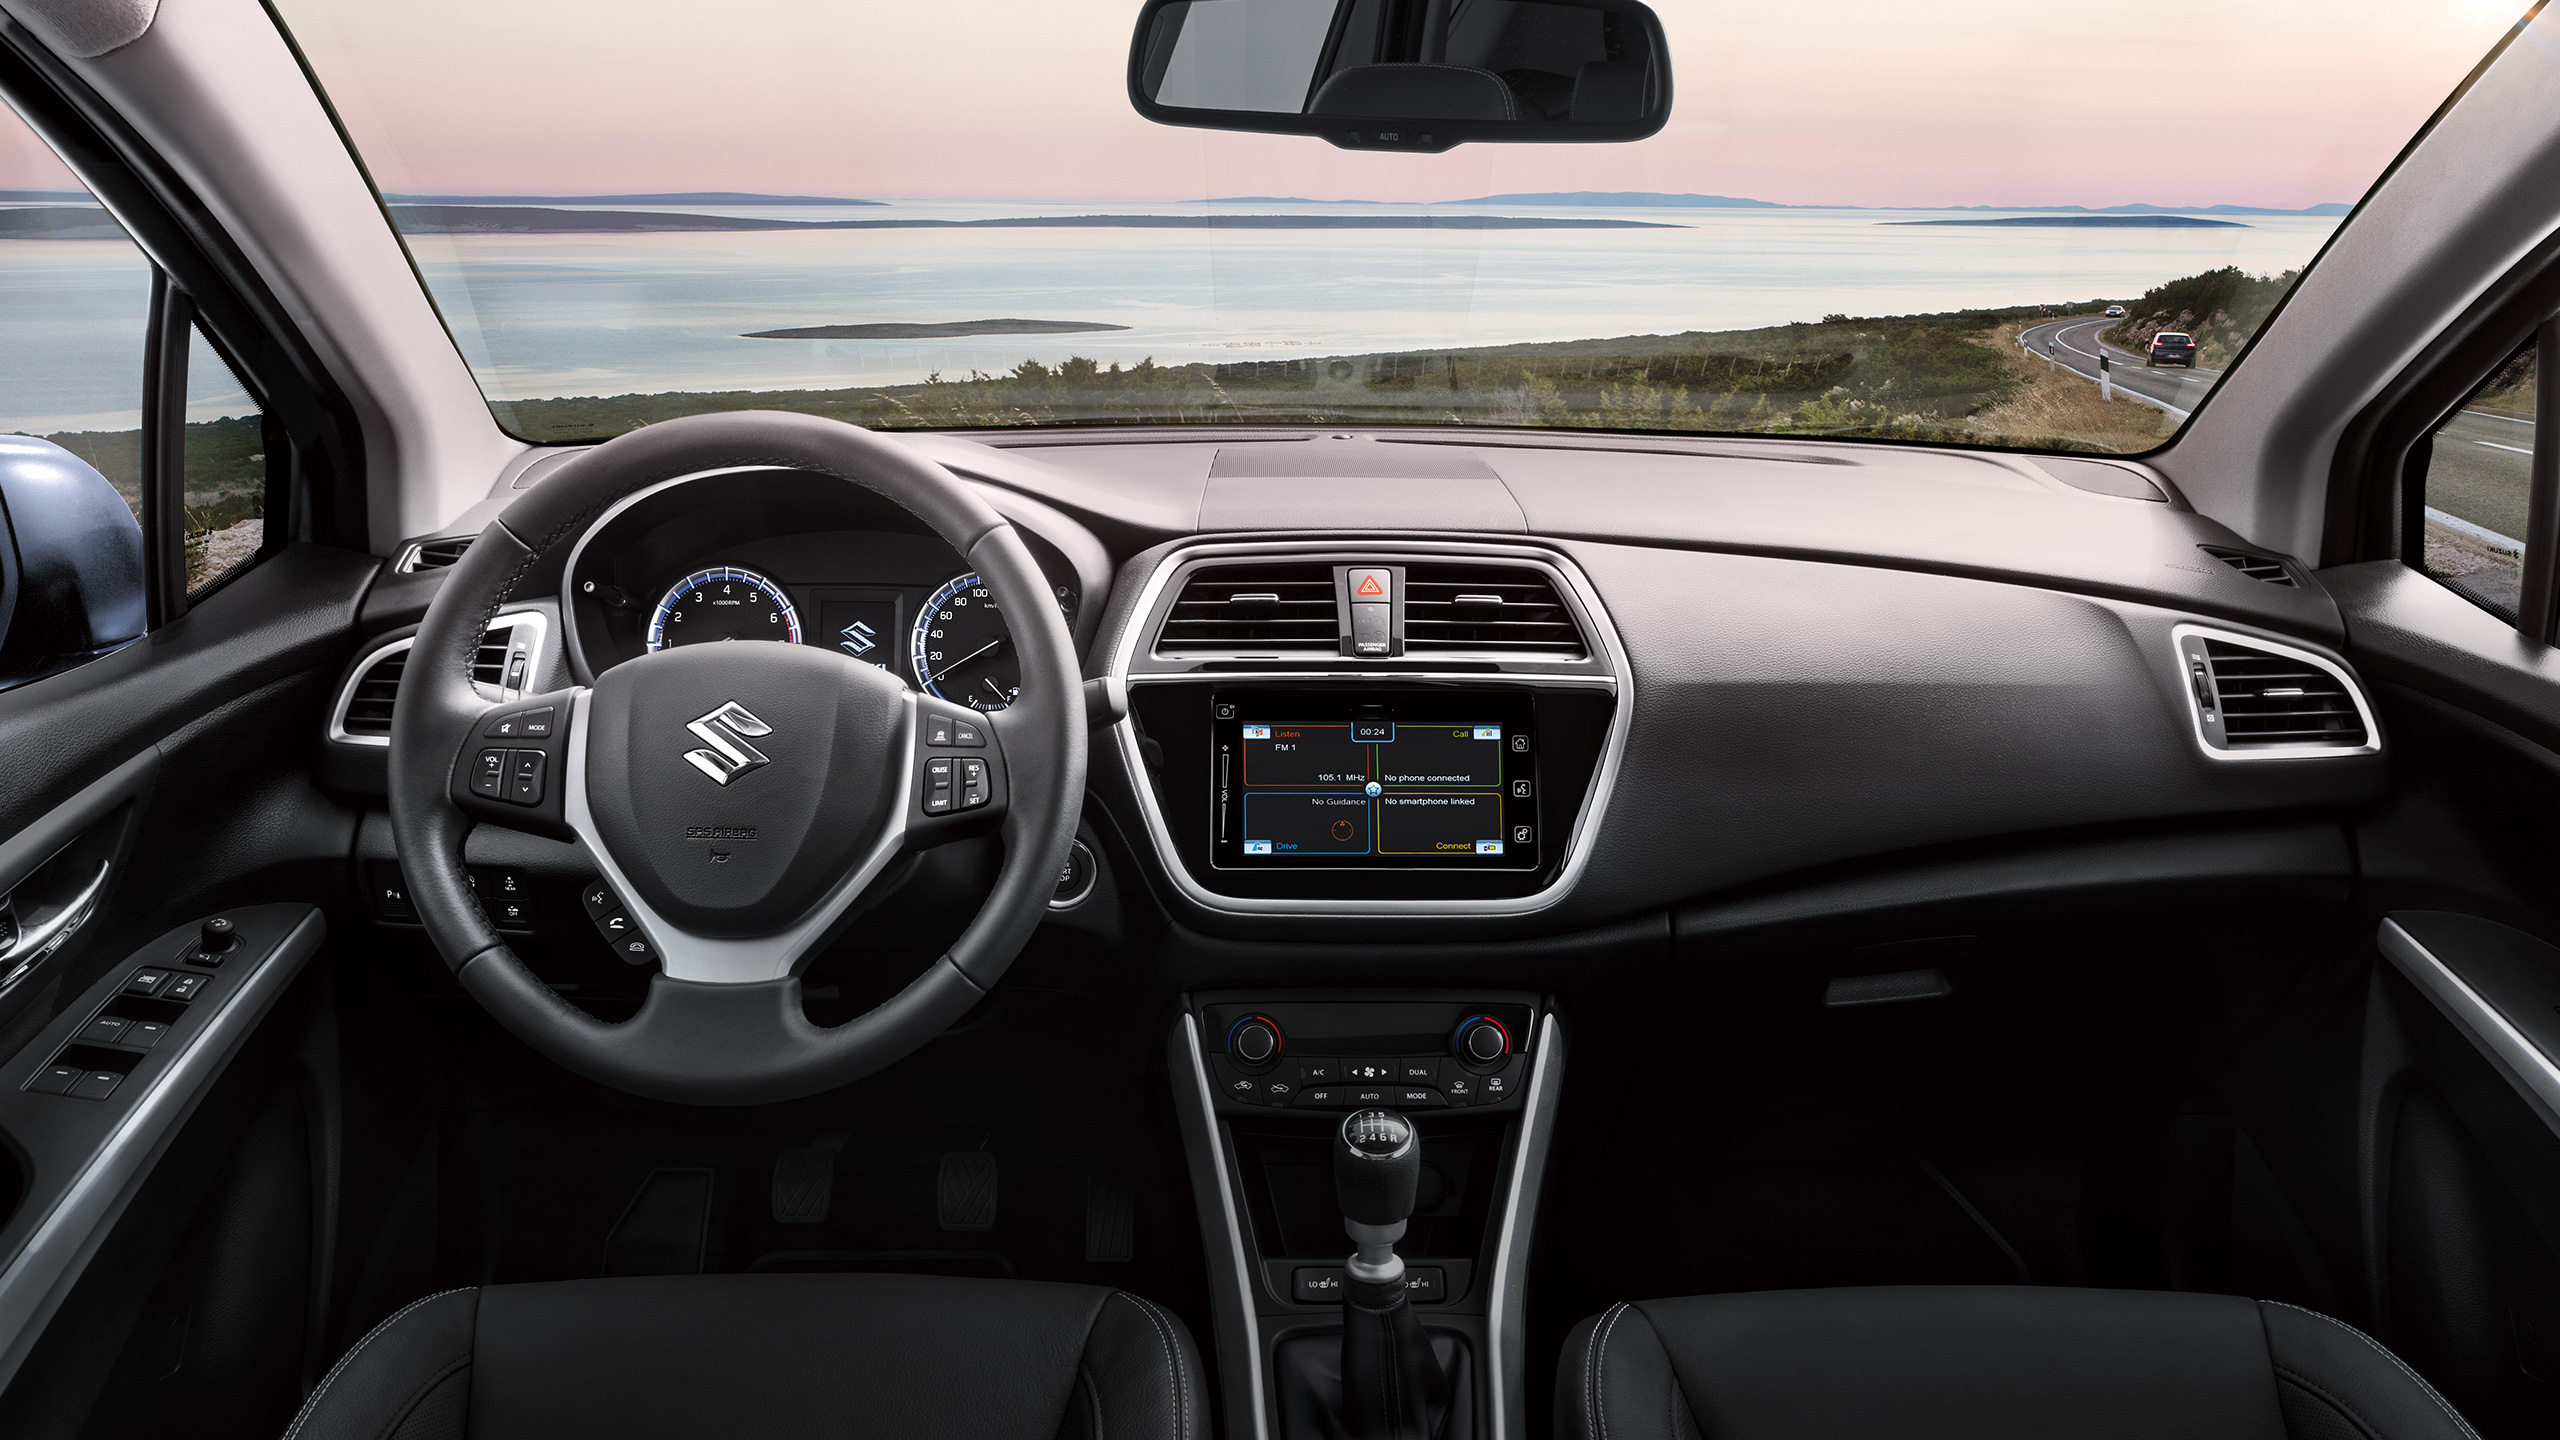 SX4-S-CROSS-interior-showing-instrument-panel-with-ocean-outside